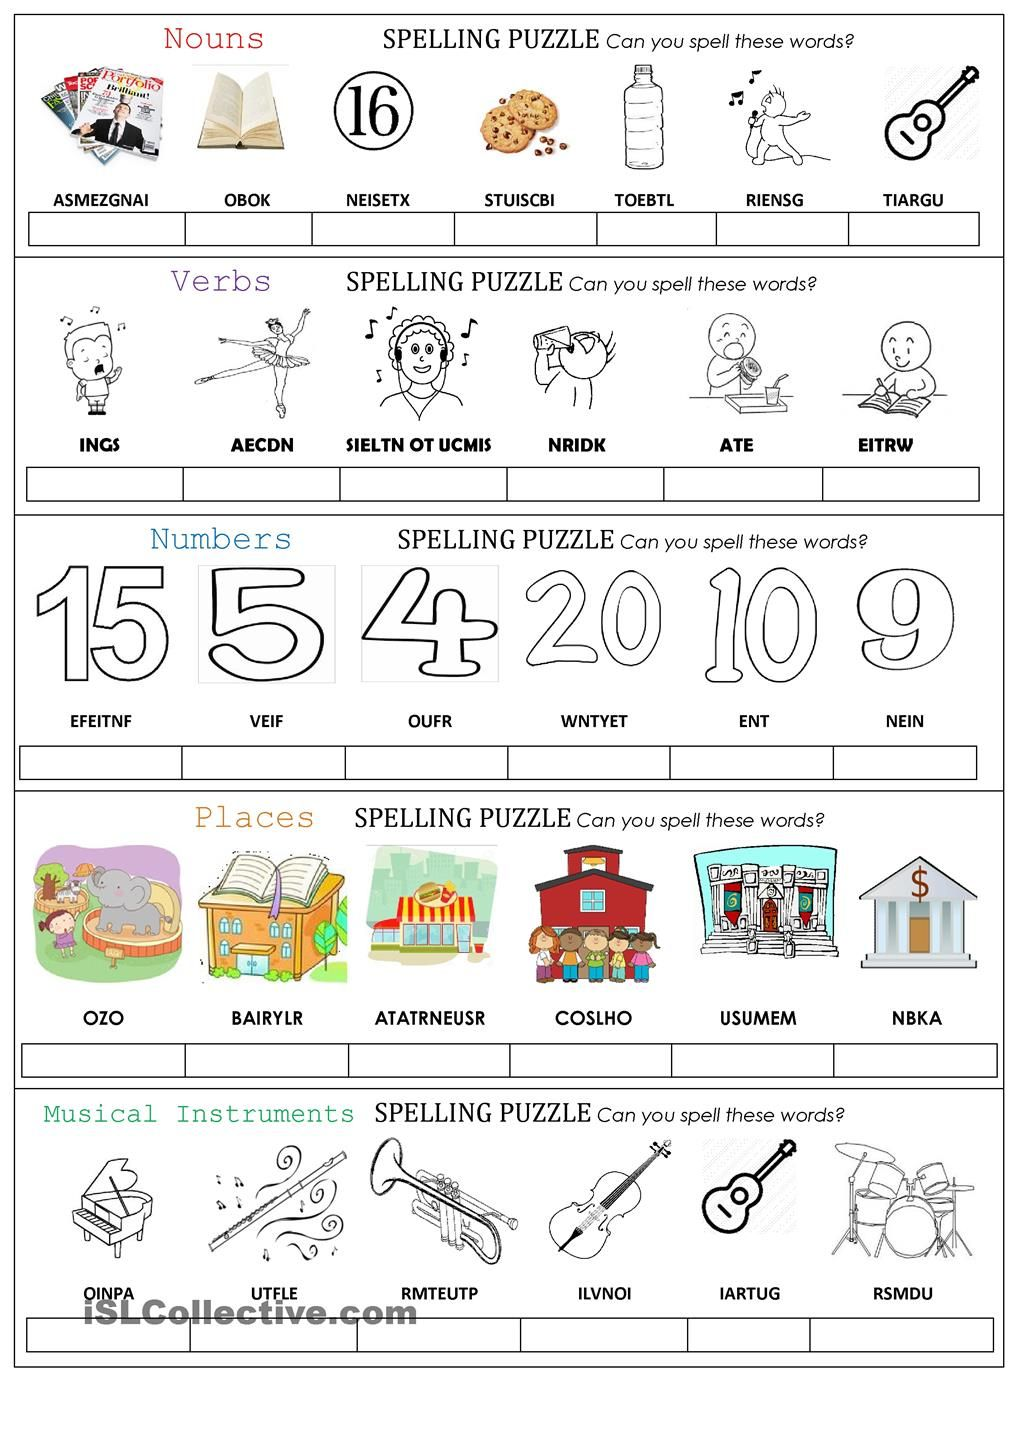 spelling puzzle esl worksheets of the day teaching english english class learn english. Black Bedroom Furniture Sets. Home Design Ideas